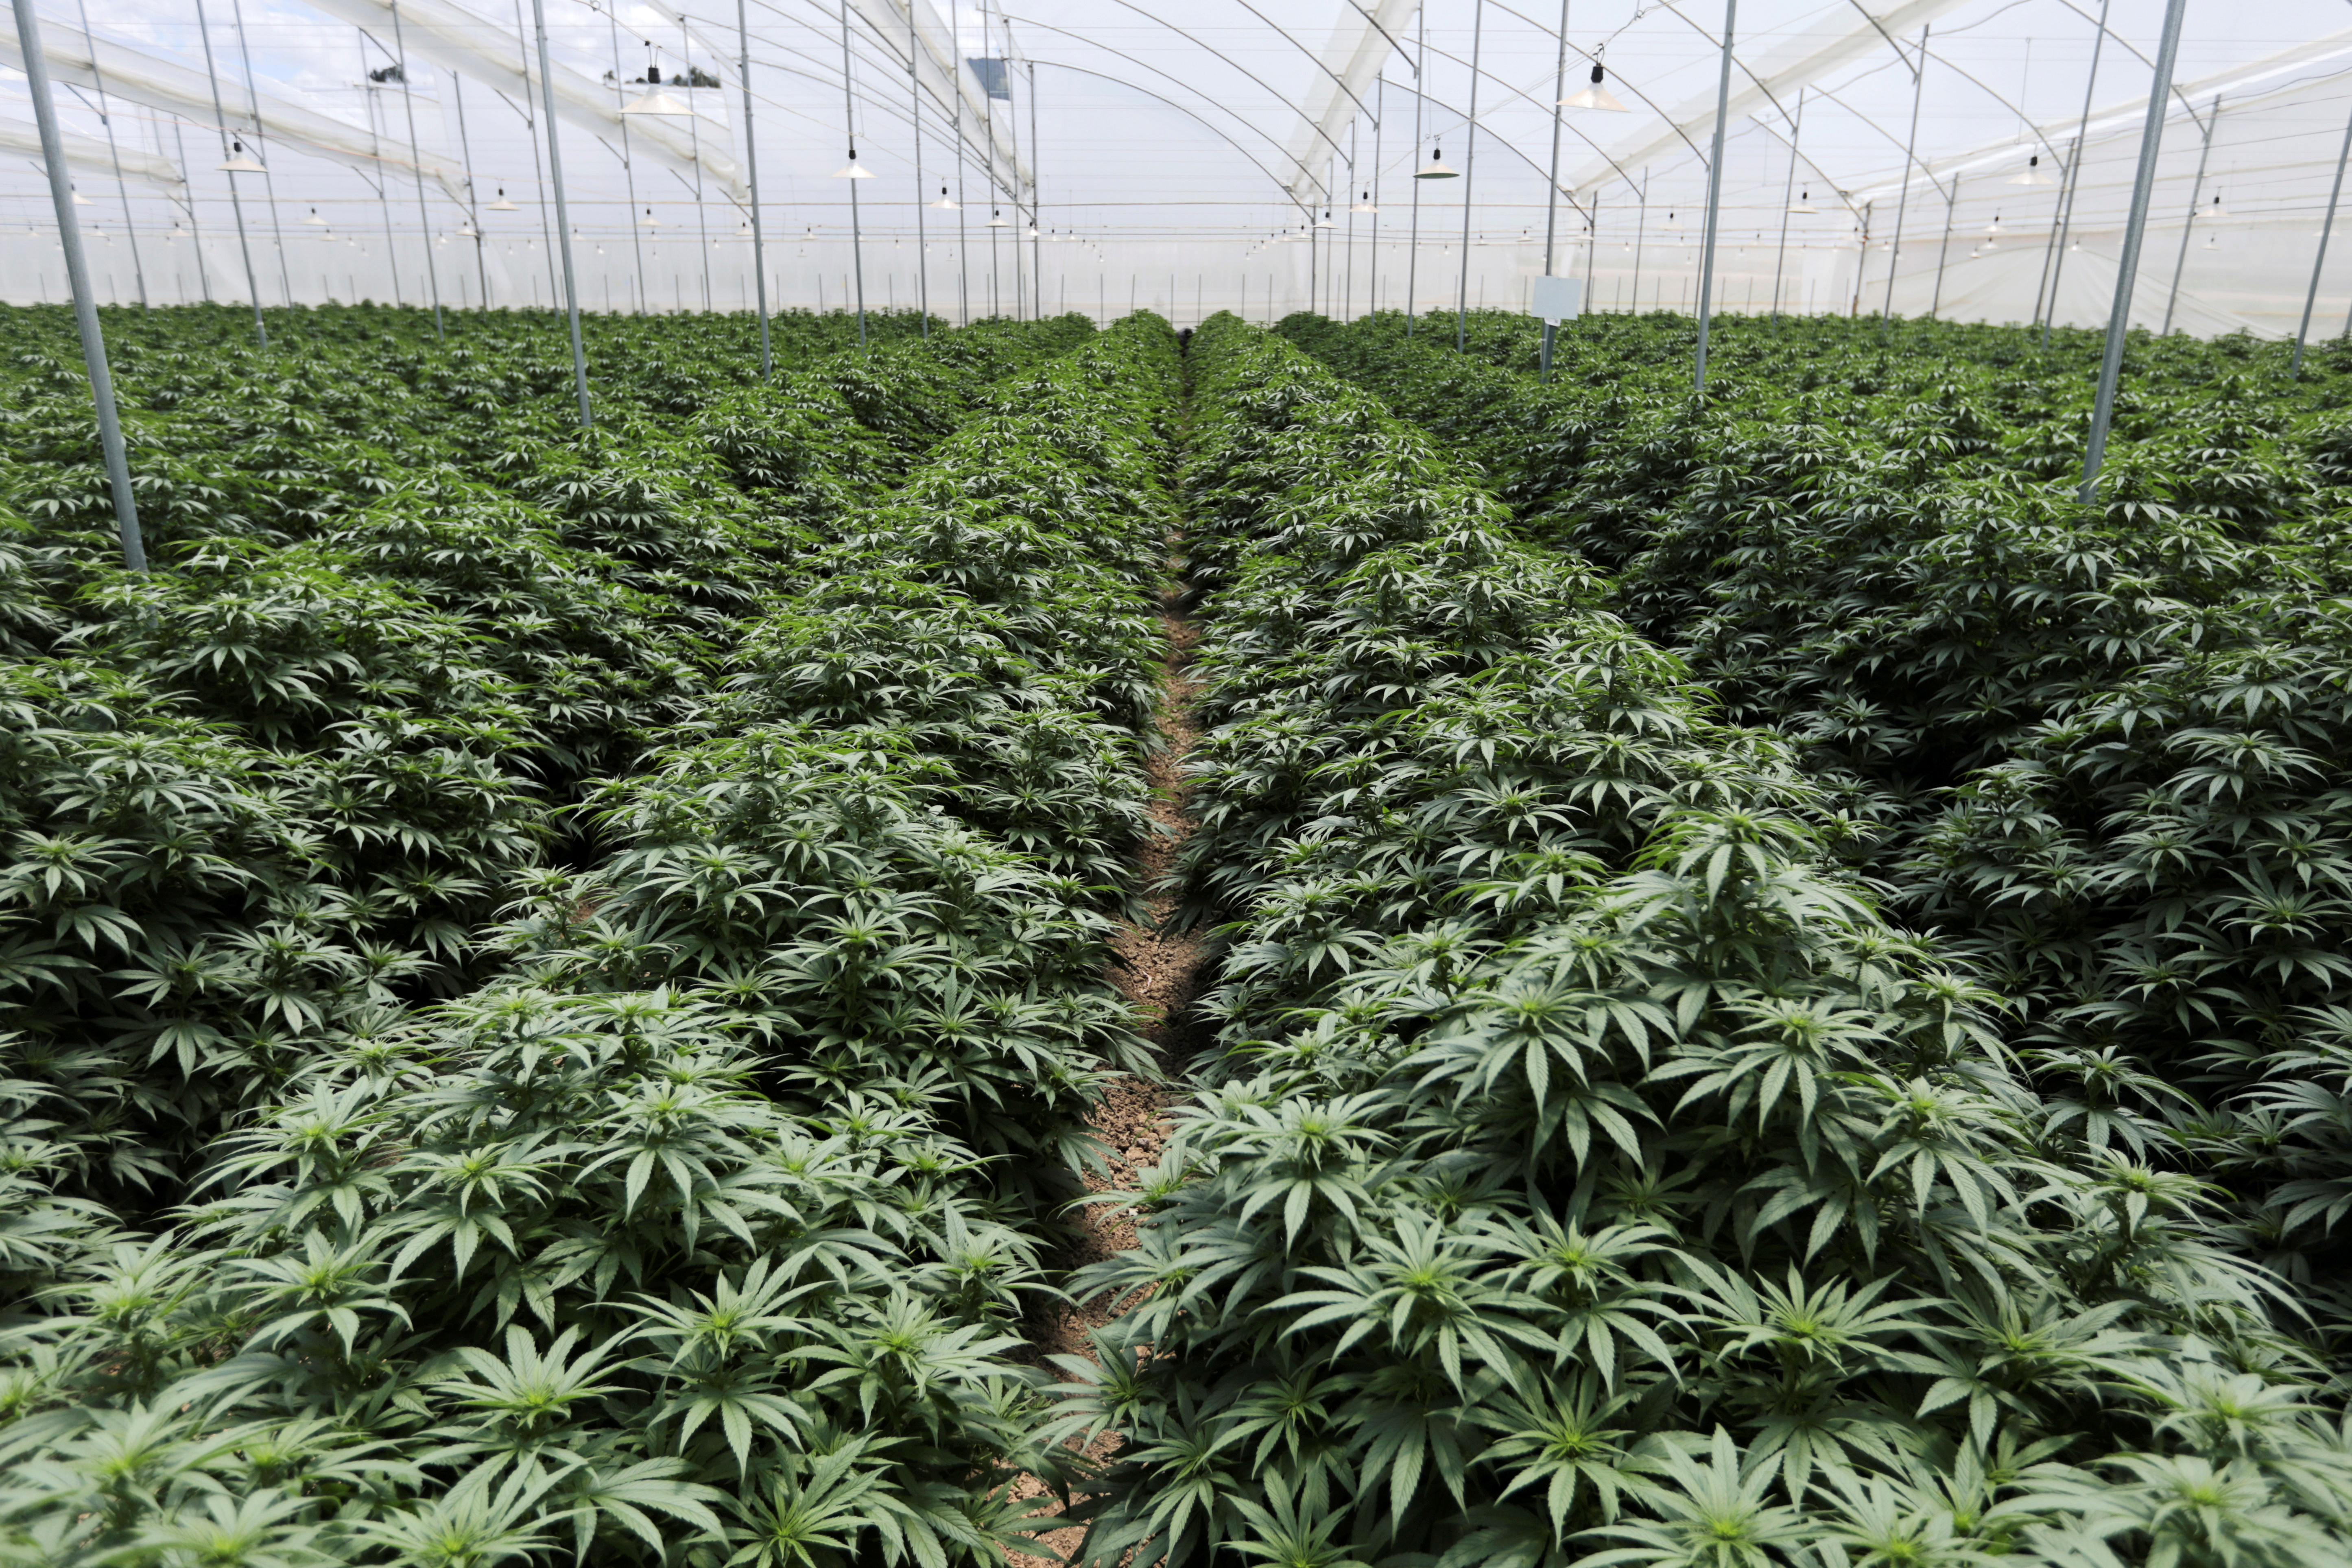 Cannabis plants are seen inside a greenhouse of the Clever Leaves company in Pesca, Colombia October 2, 2019. Picture taken October 2, 2019. REUTERS/Luisa Gonzalez